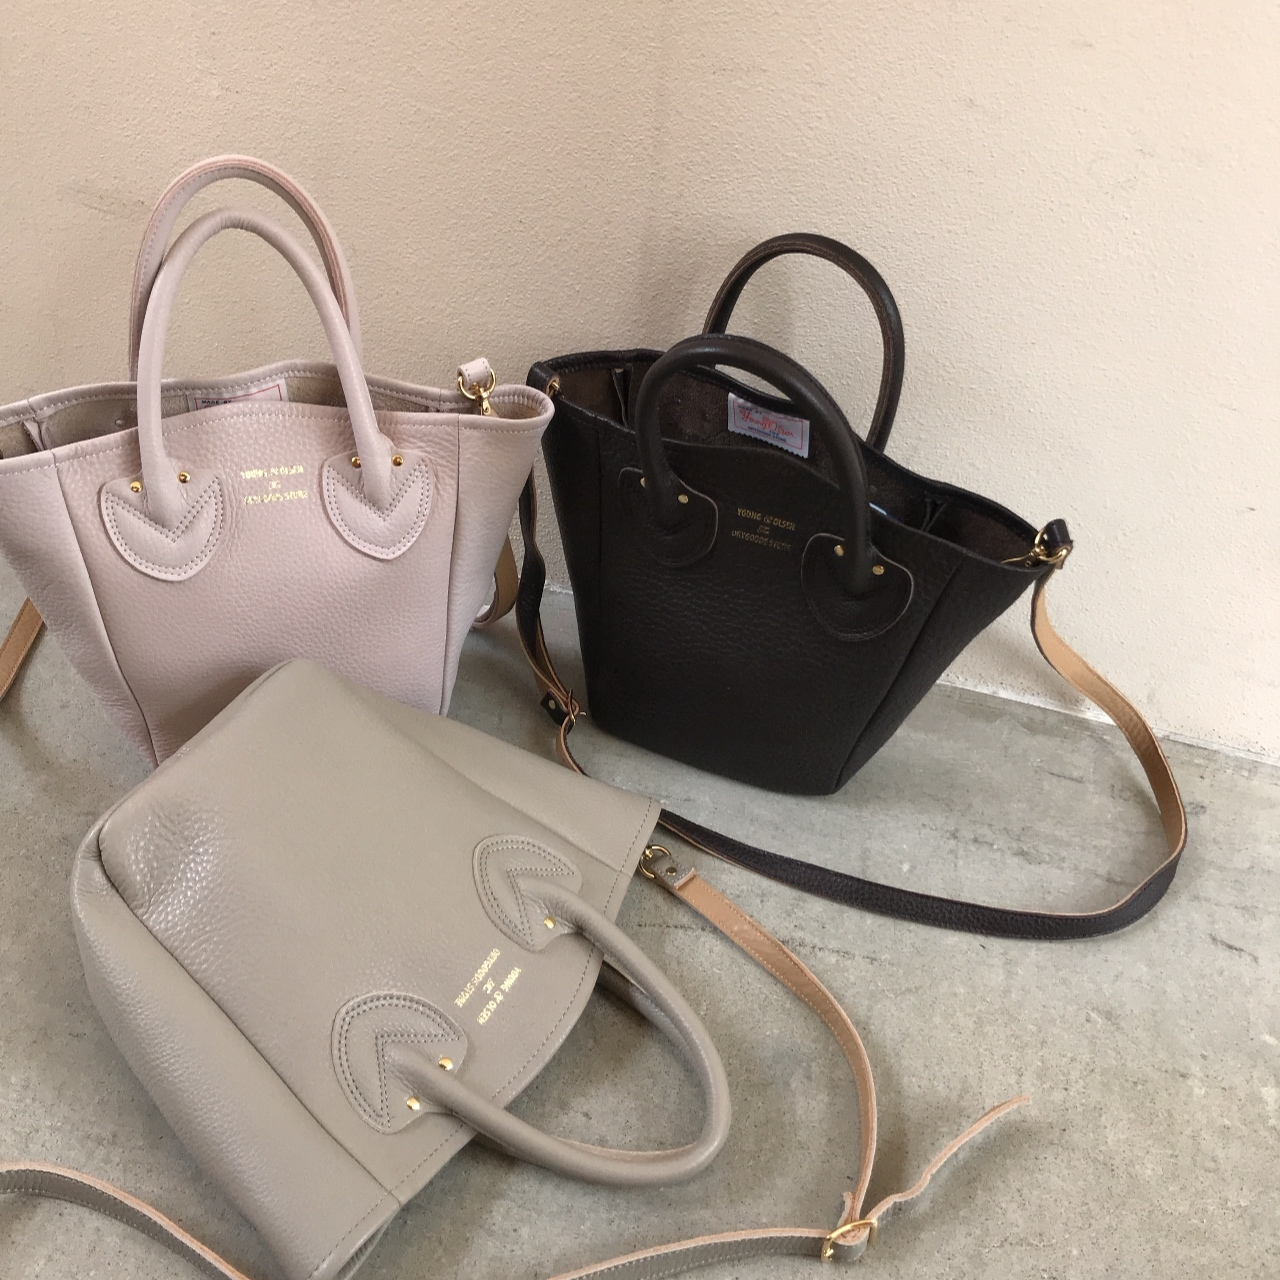 YOUNG&OLSEN - PETITE LEATHER TOTE